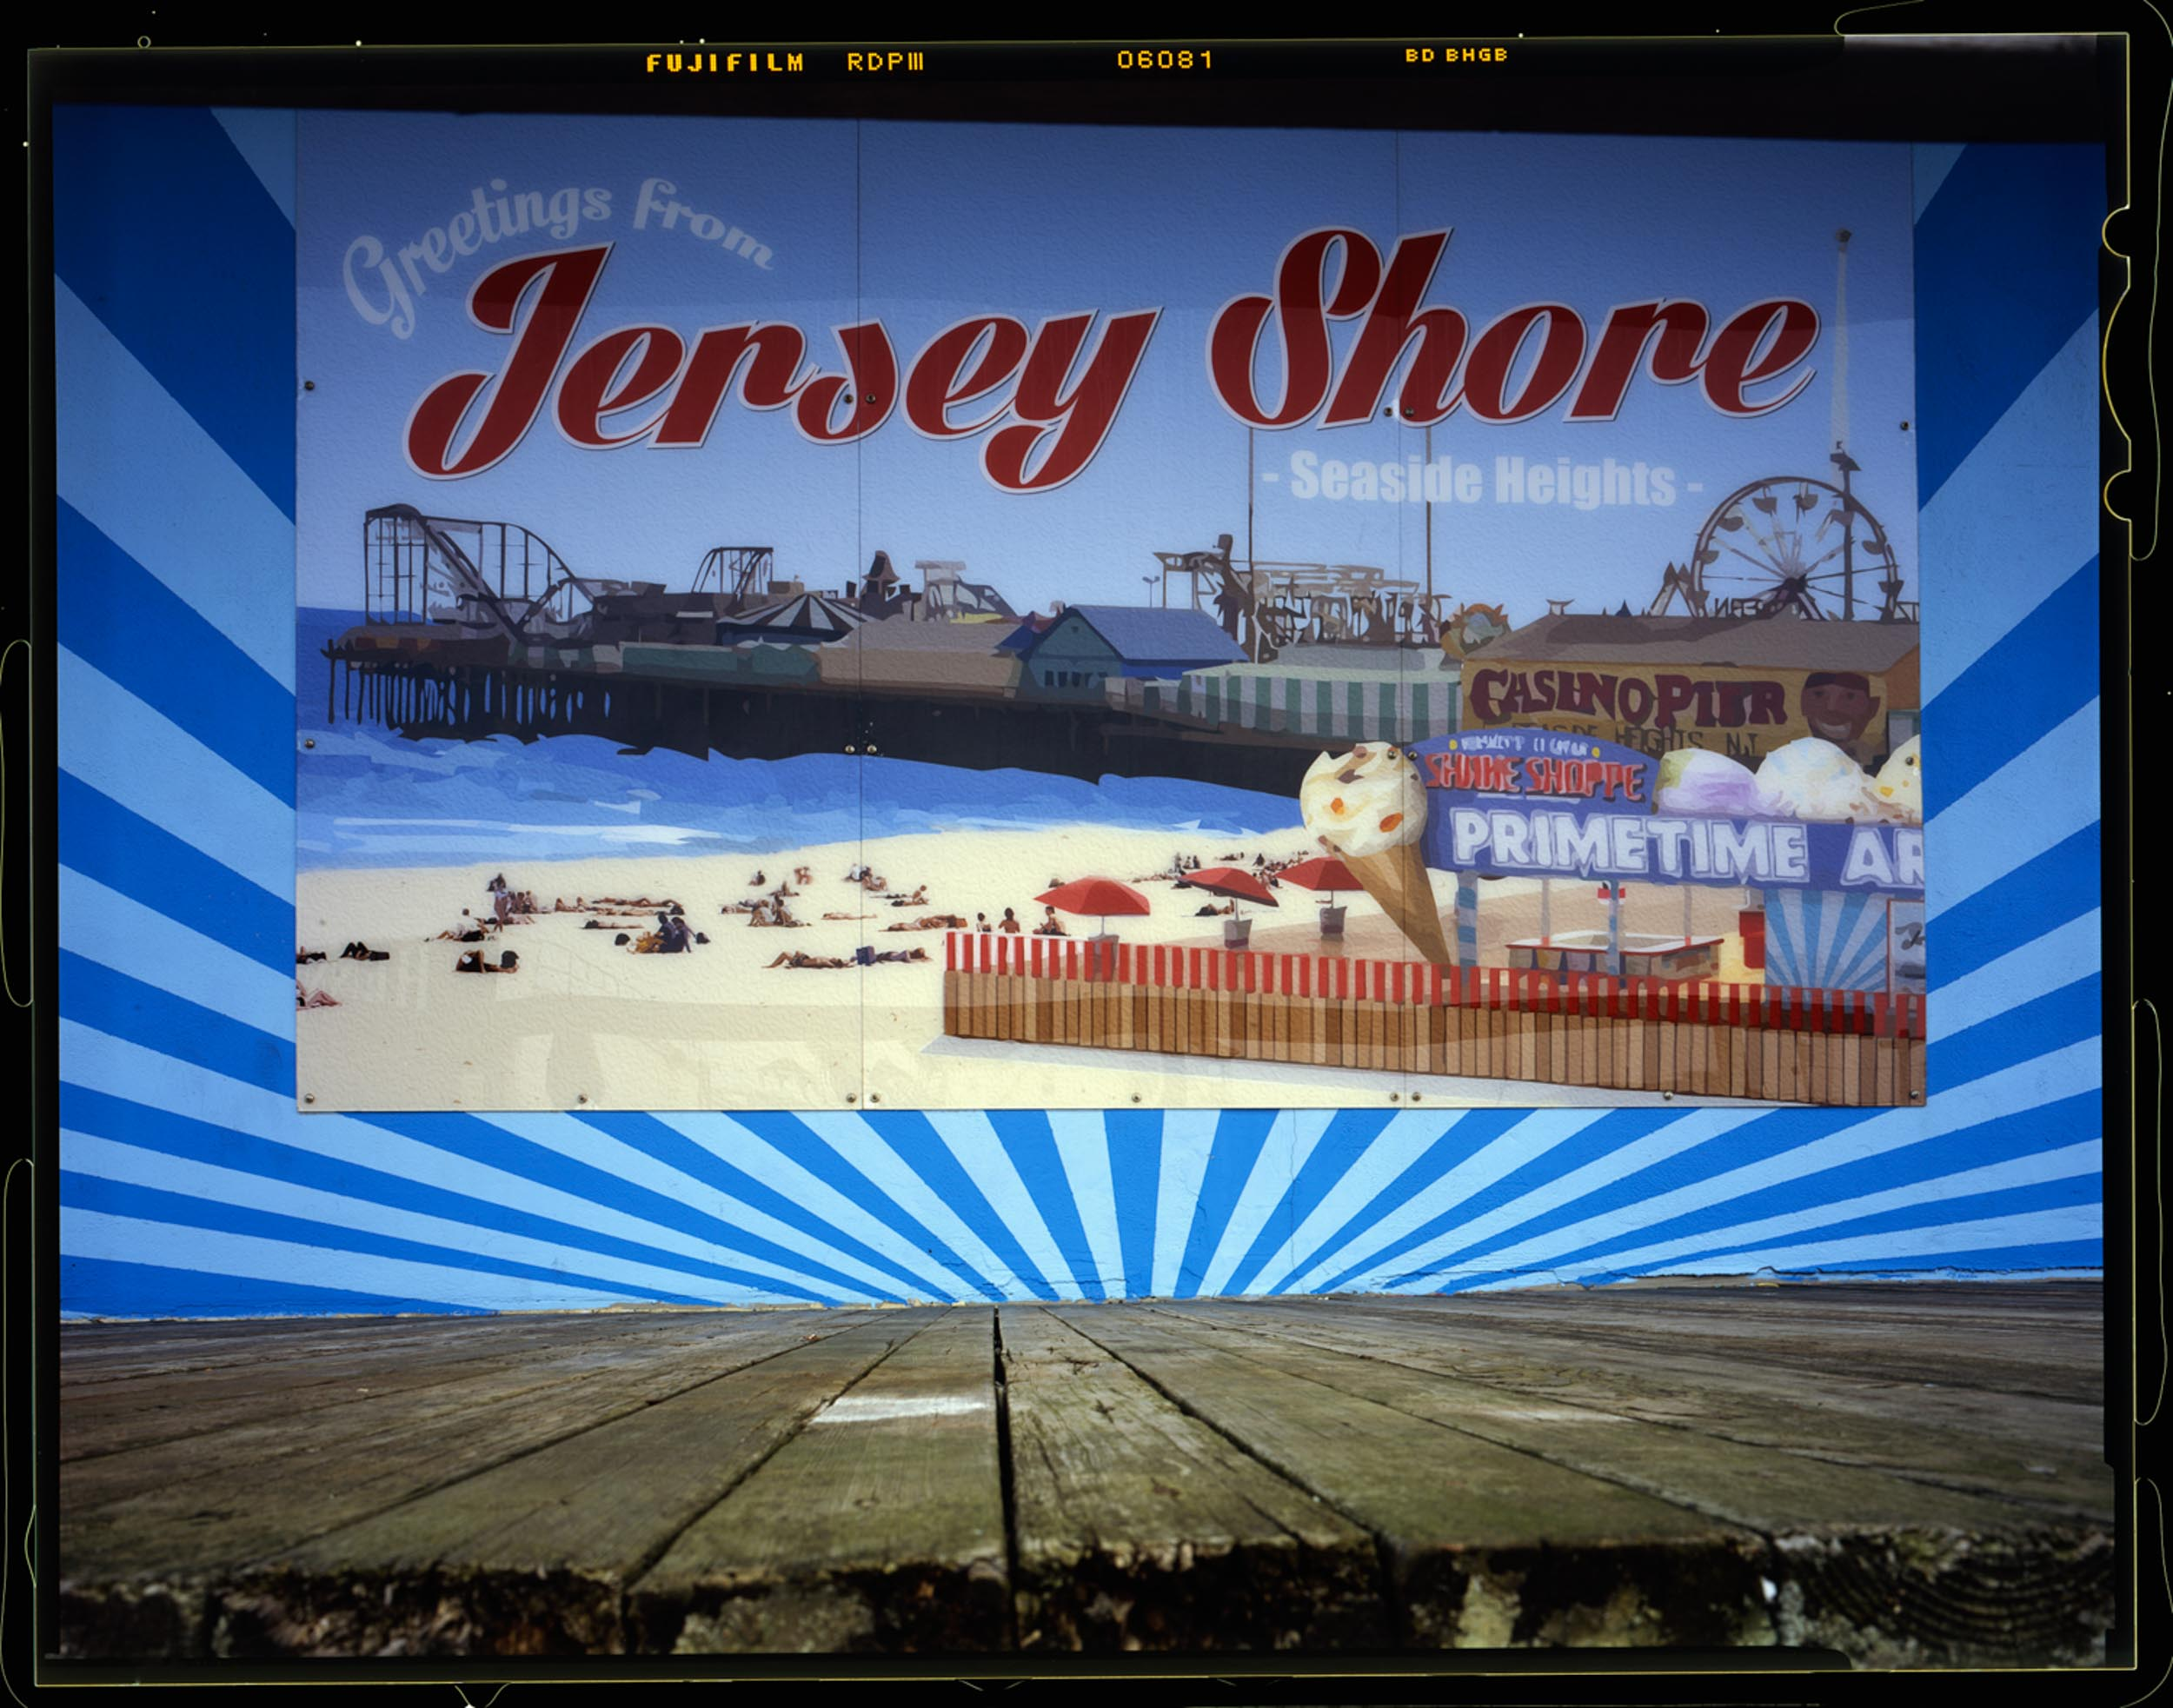 Greetings, Seaside, NJ 2014 4x5 Shen Hao.    This image helps transition into the actual season starting and people starting to visit the shore again from March till Labor Day.